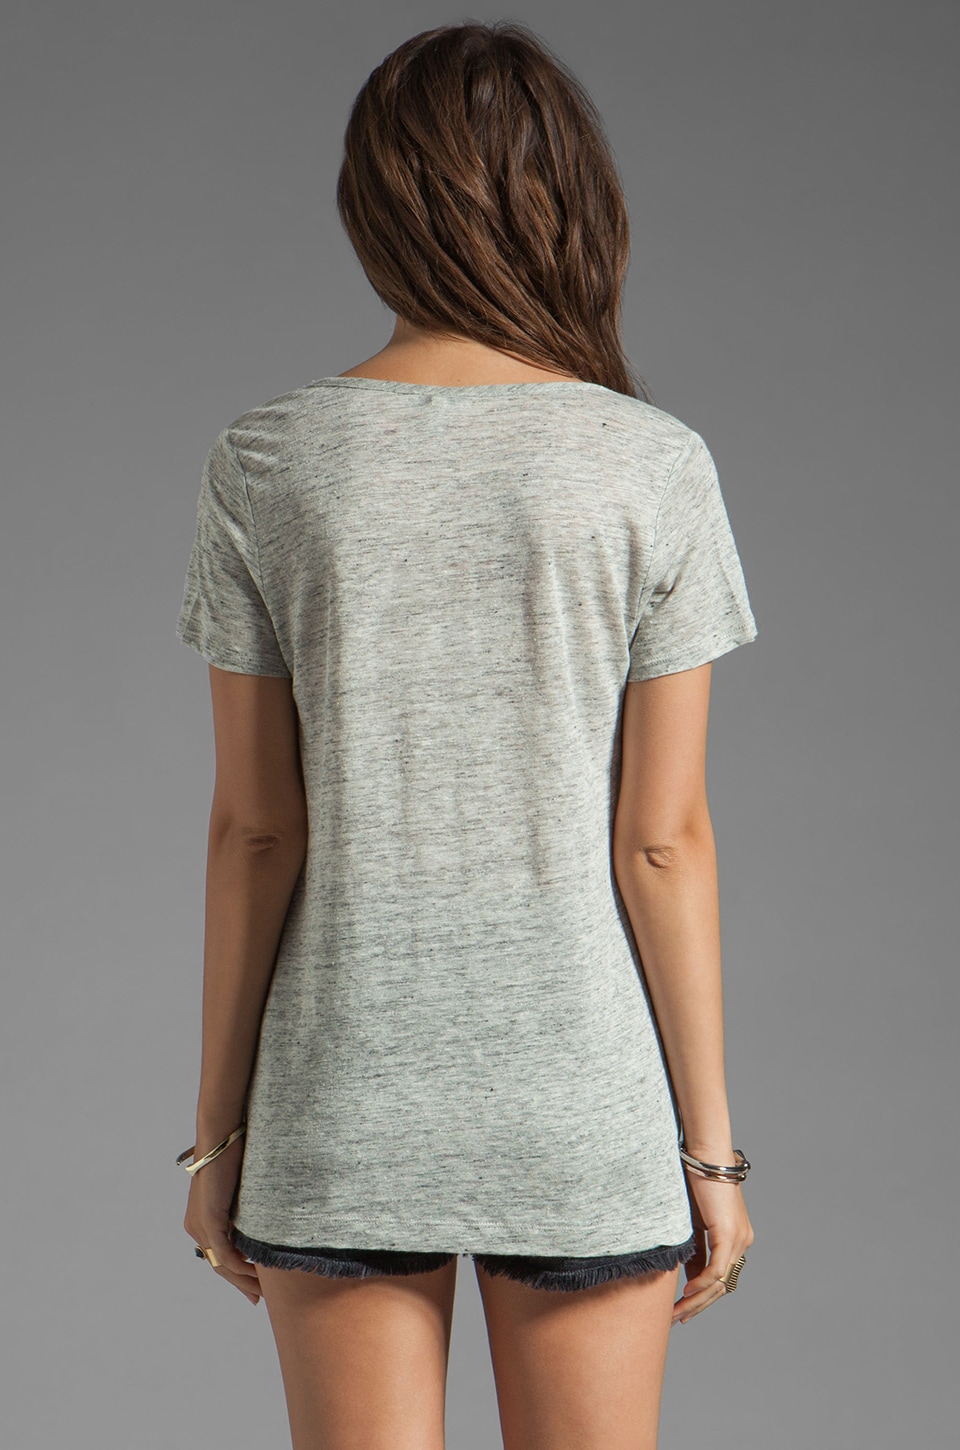 Joie Cotton Tee in Light Heather Grey